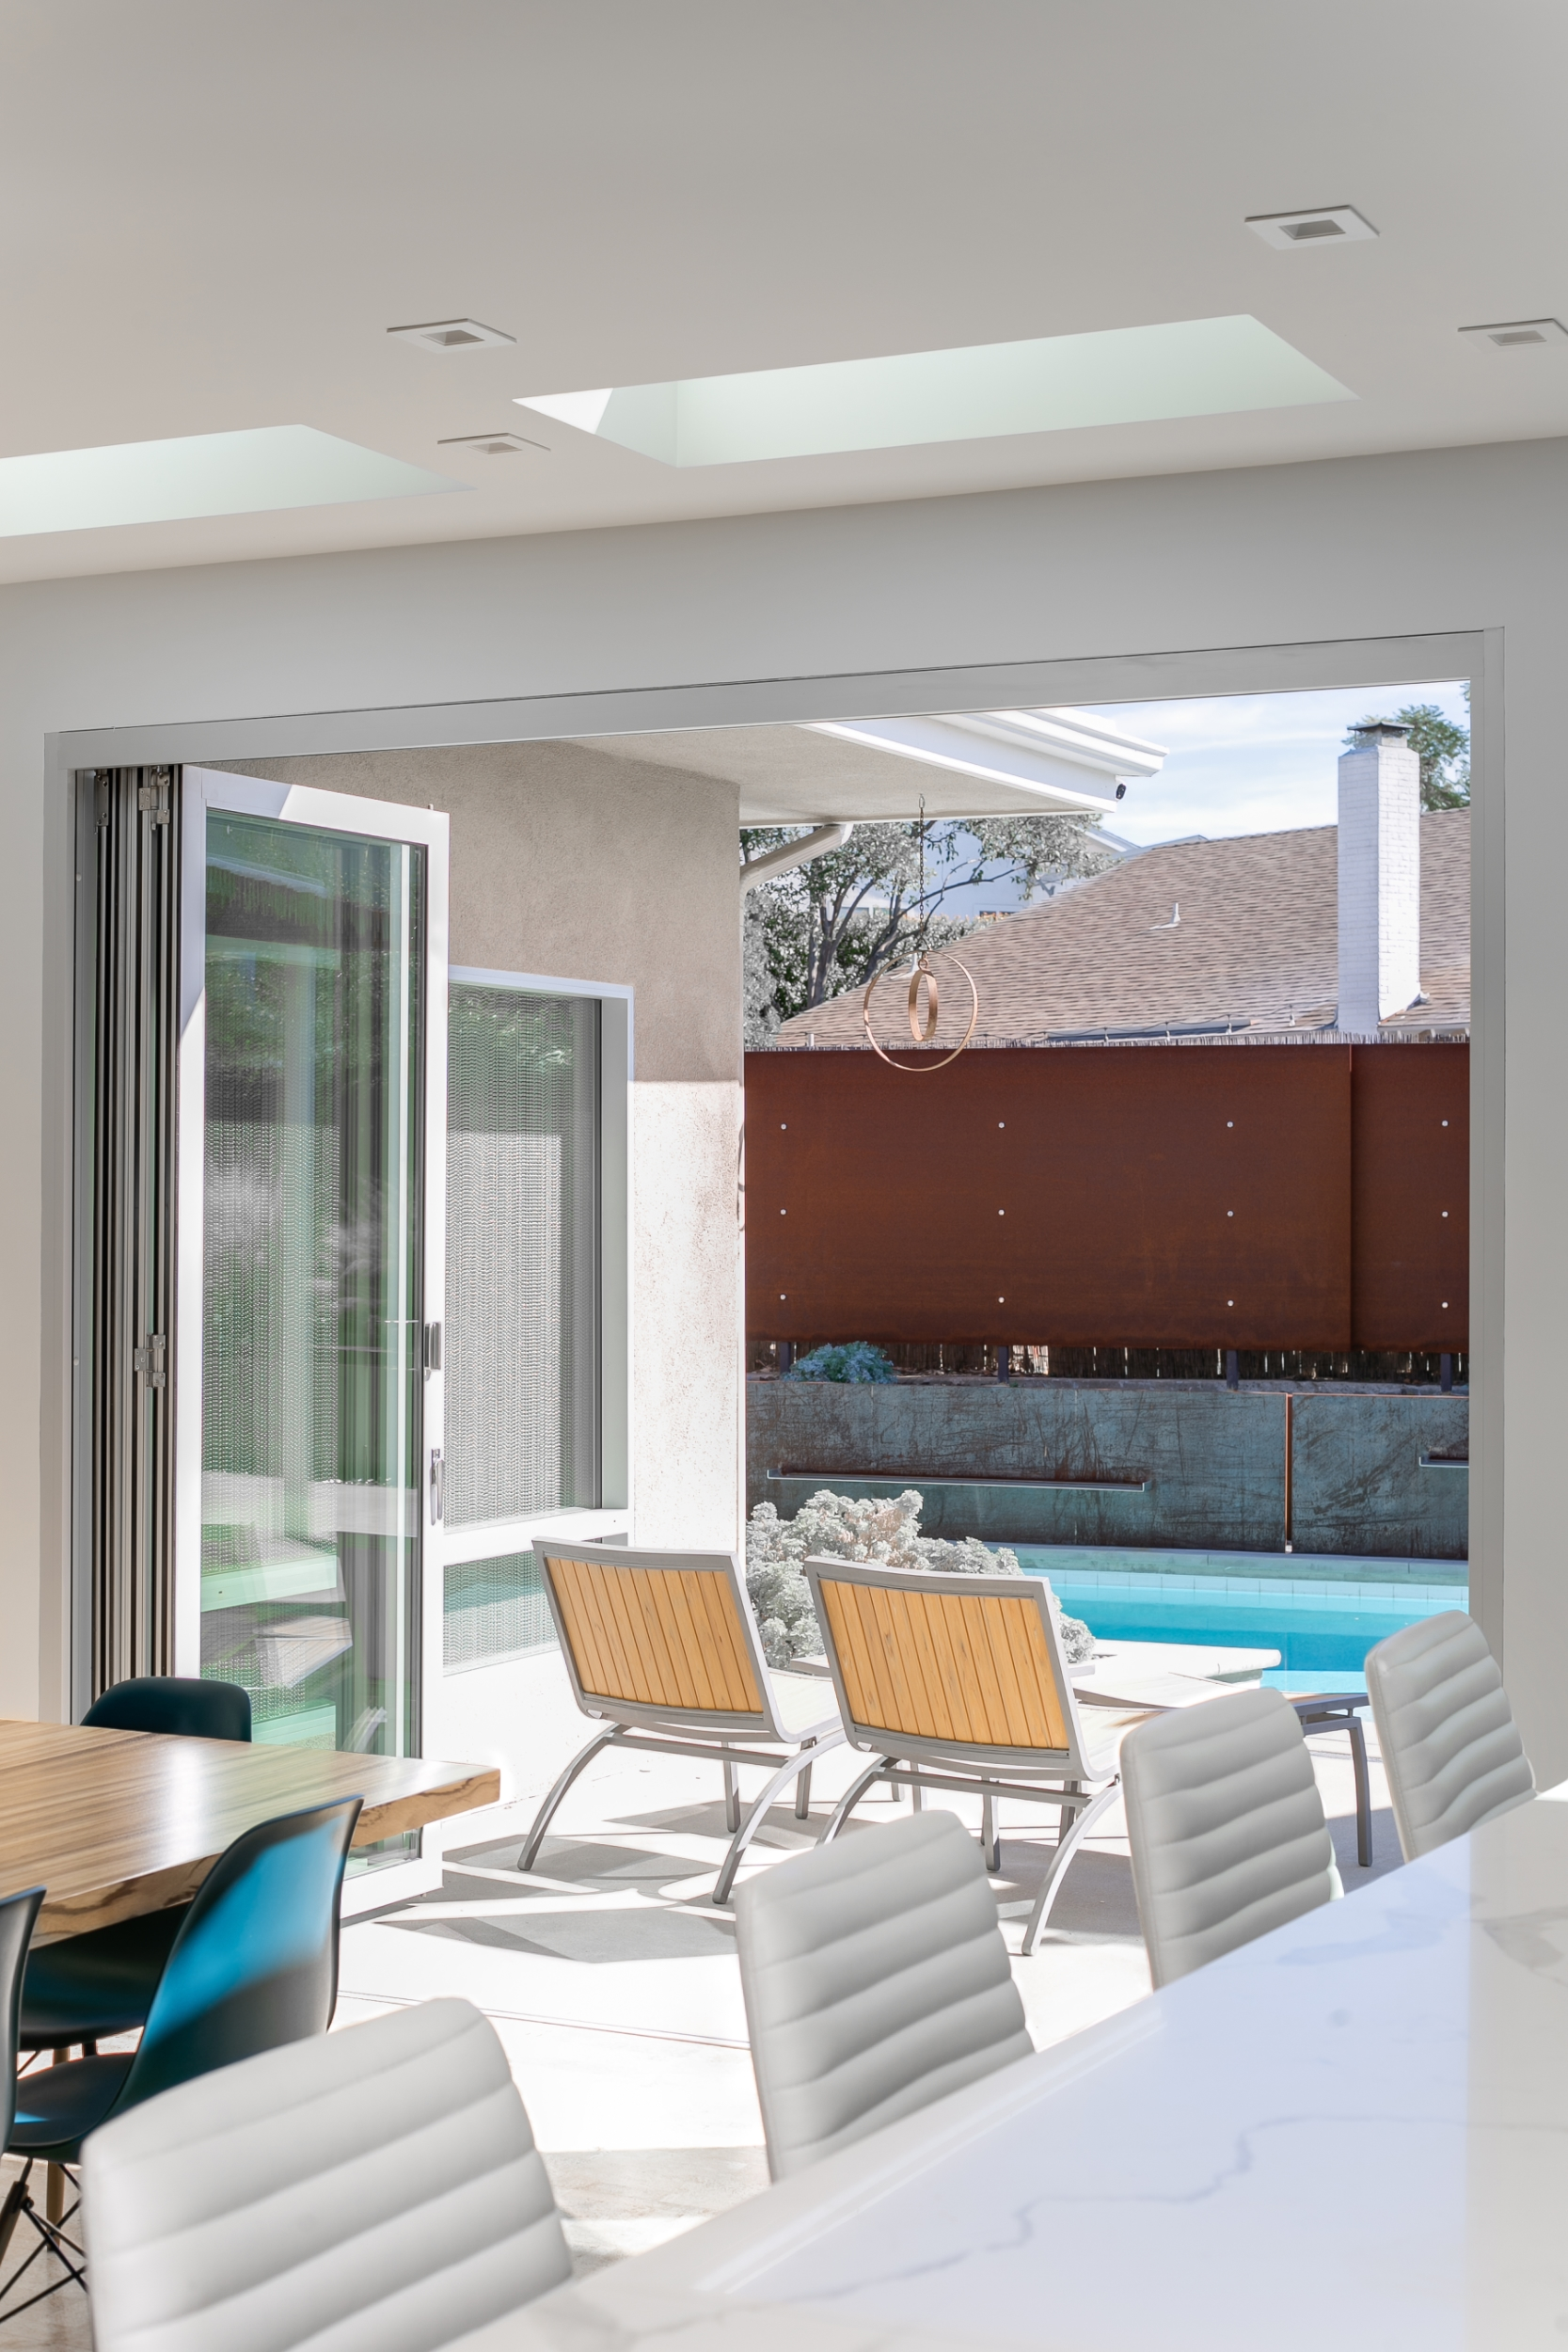 Indoor-outdoor living: the folding glass doors open the kitchen and dining room onto the patio and the pool, accentuated with a wall of Corten steel